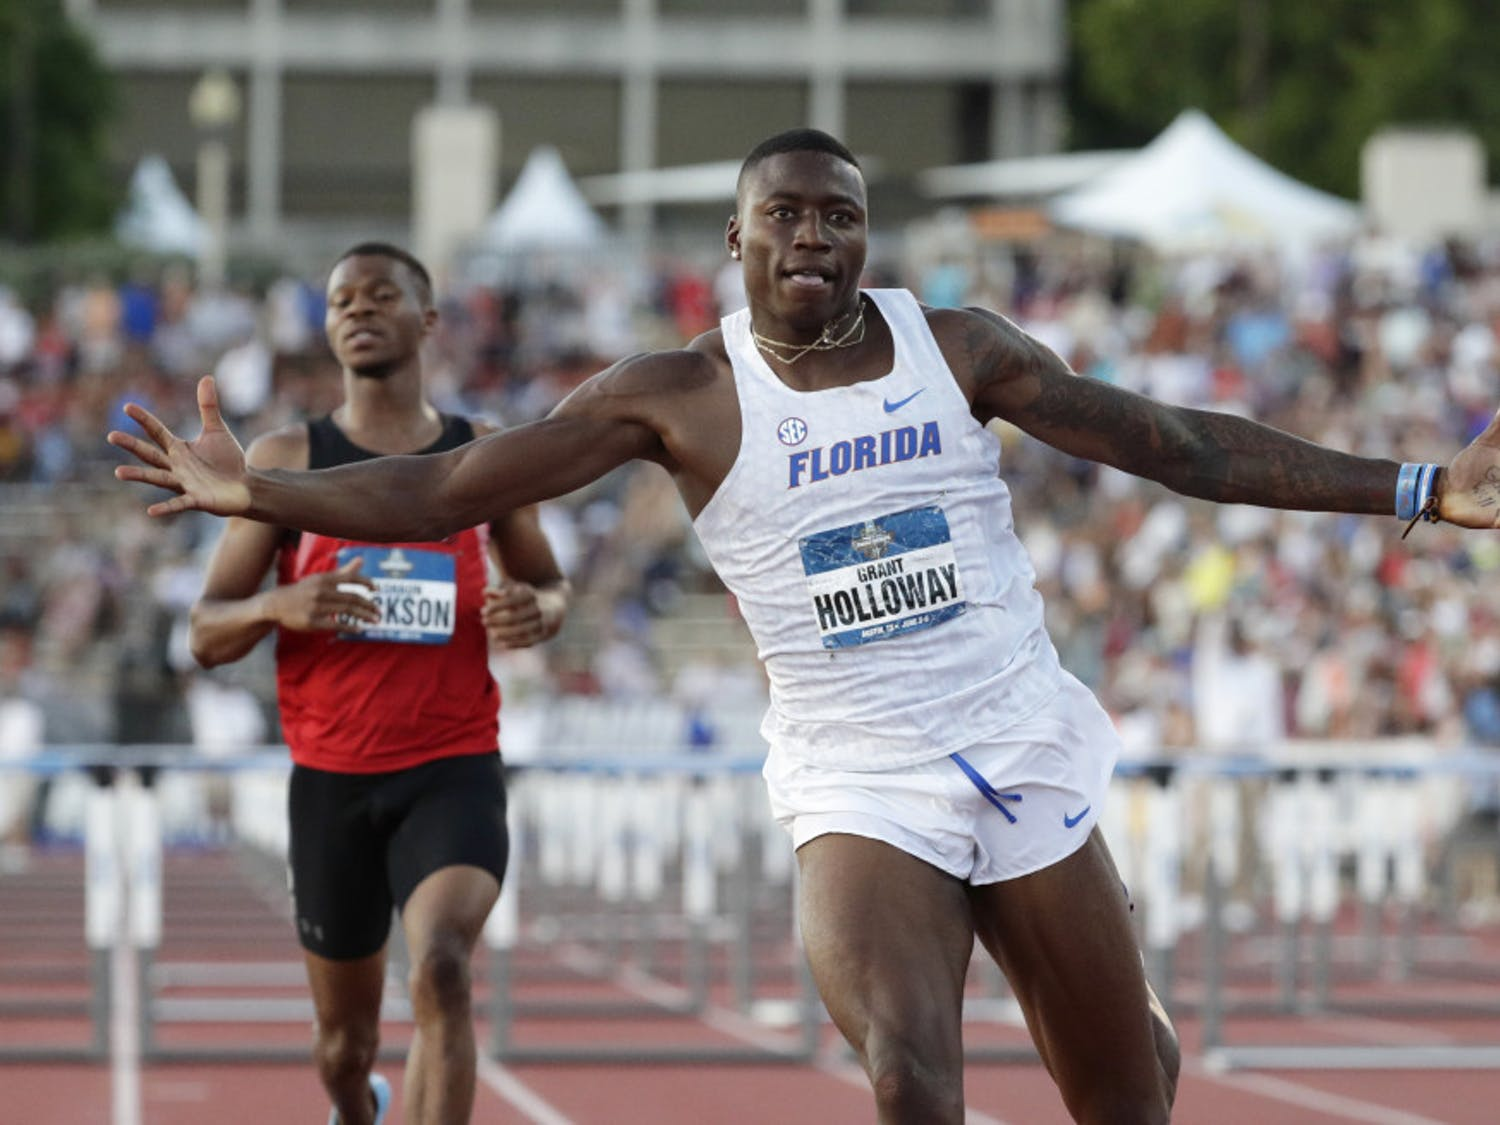 Grant Holloway became the first collegiate athlete to break the 13-second mark in the 110-meter hurdle with his time of 12.98 seconds over the weekend.